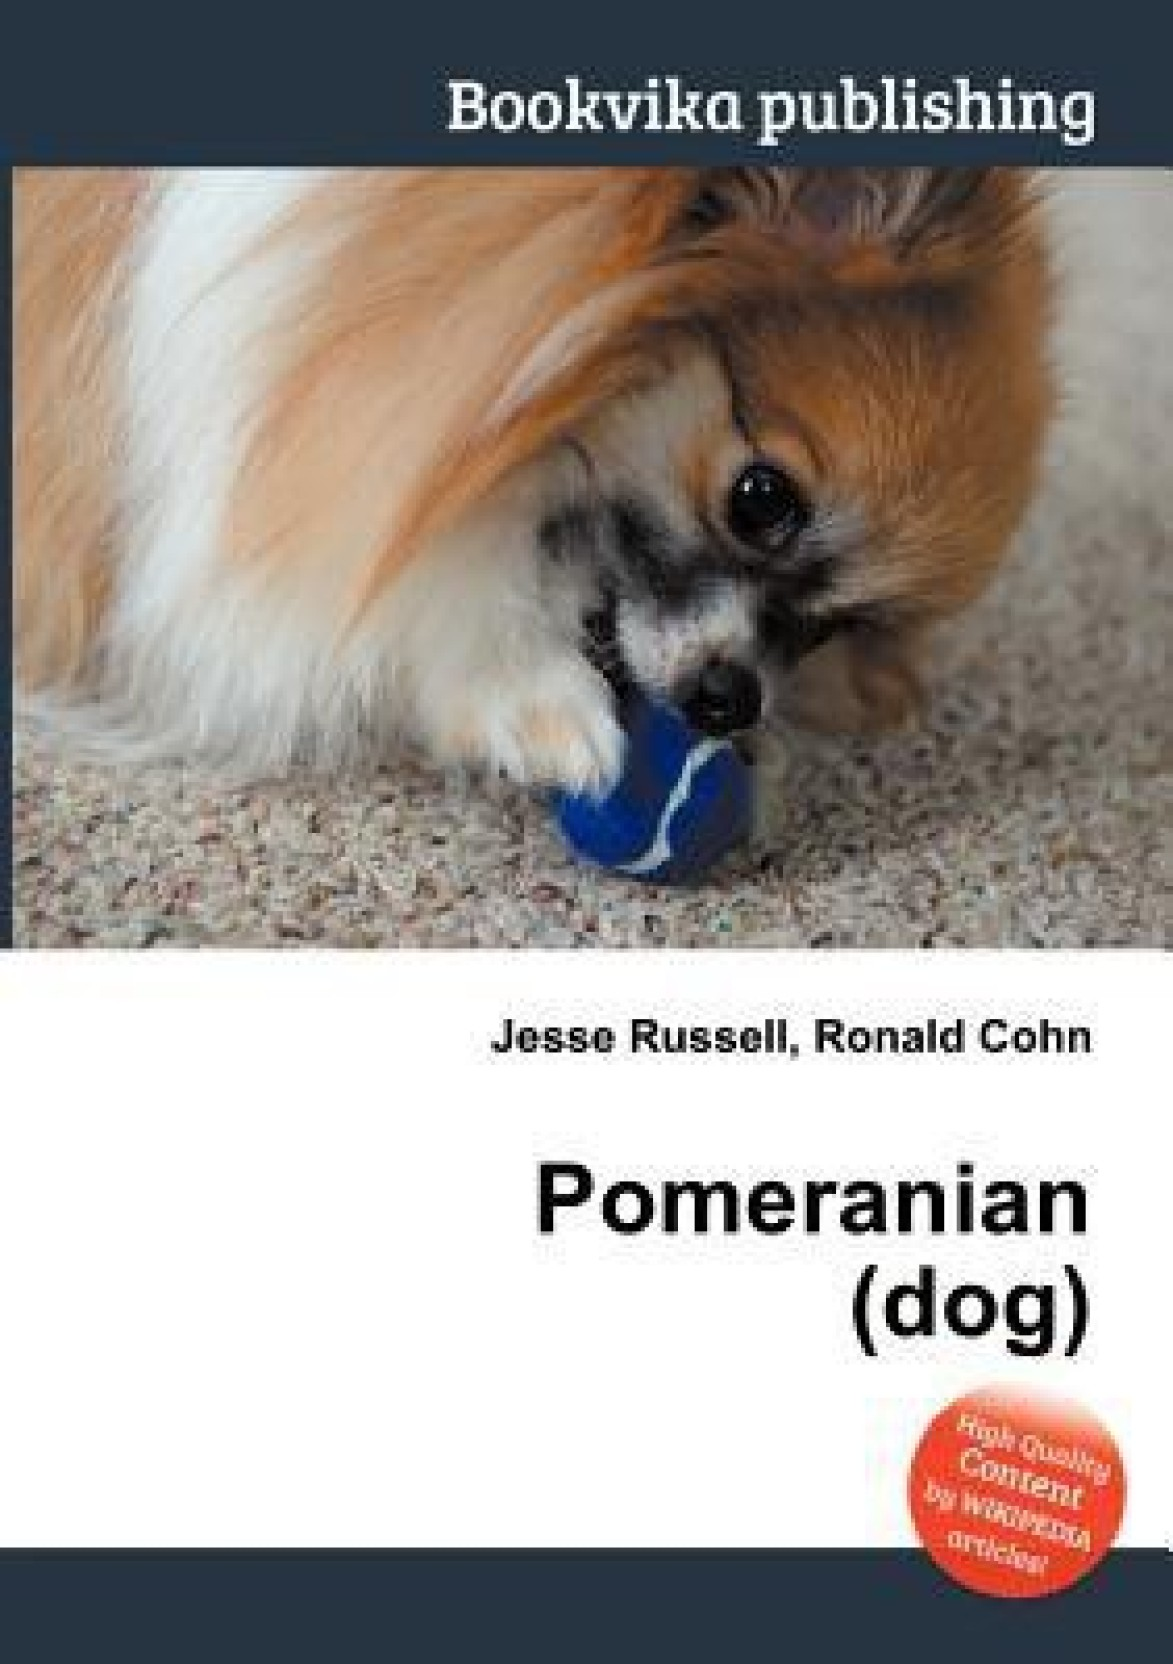 Pomeranian Dog Buy Pomeranian Dog By Jesse Russell Ronald Cohn